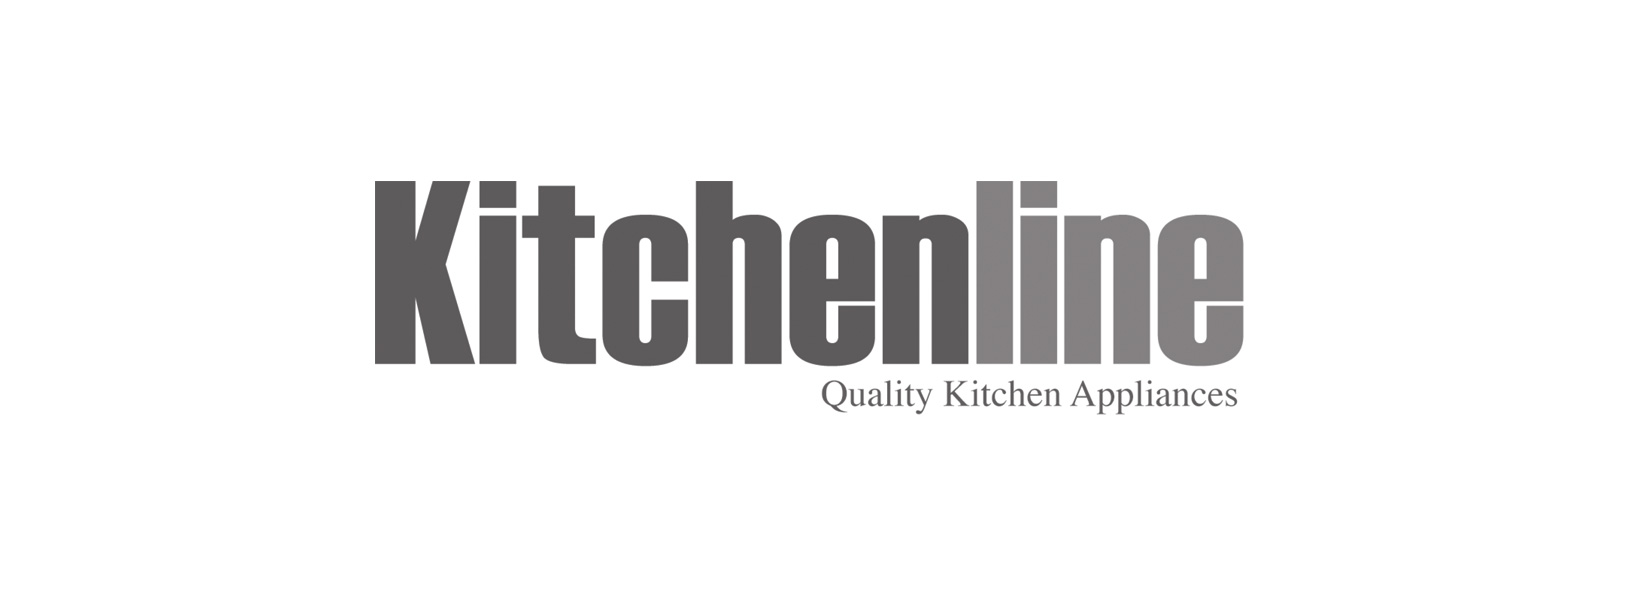 Kitchenline